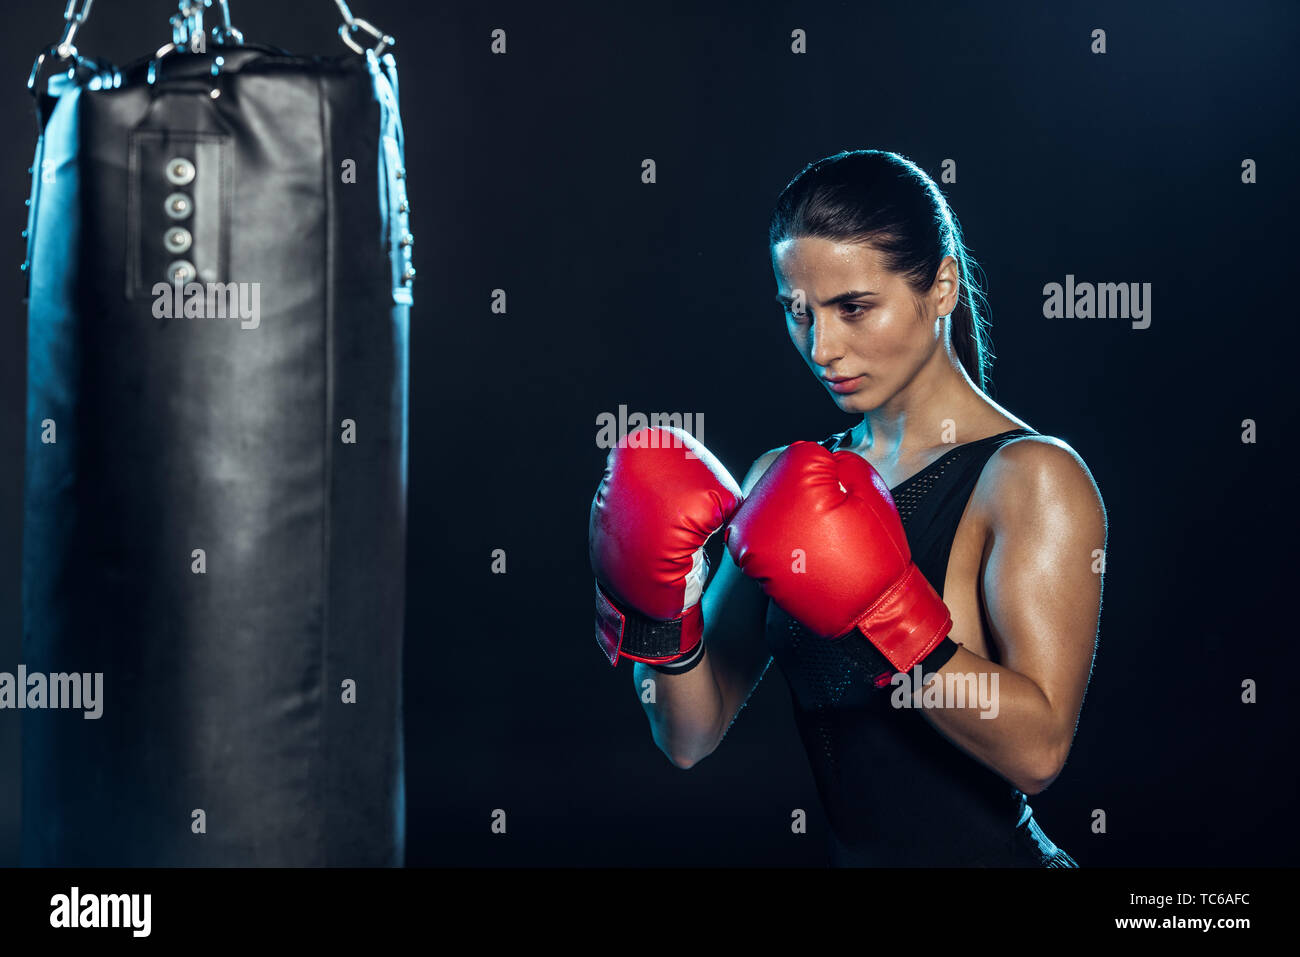 confident boxer in red gloves looking at punching bag on black - Stock Image